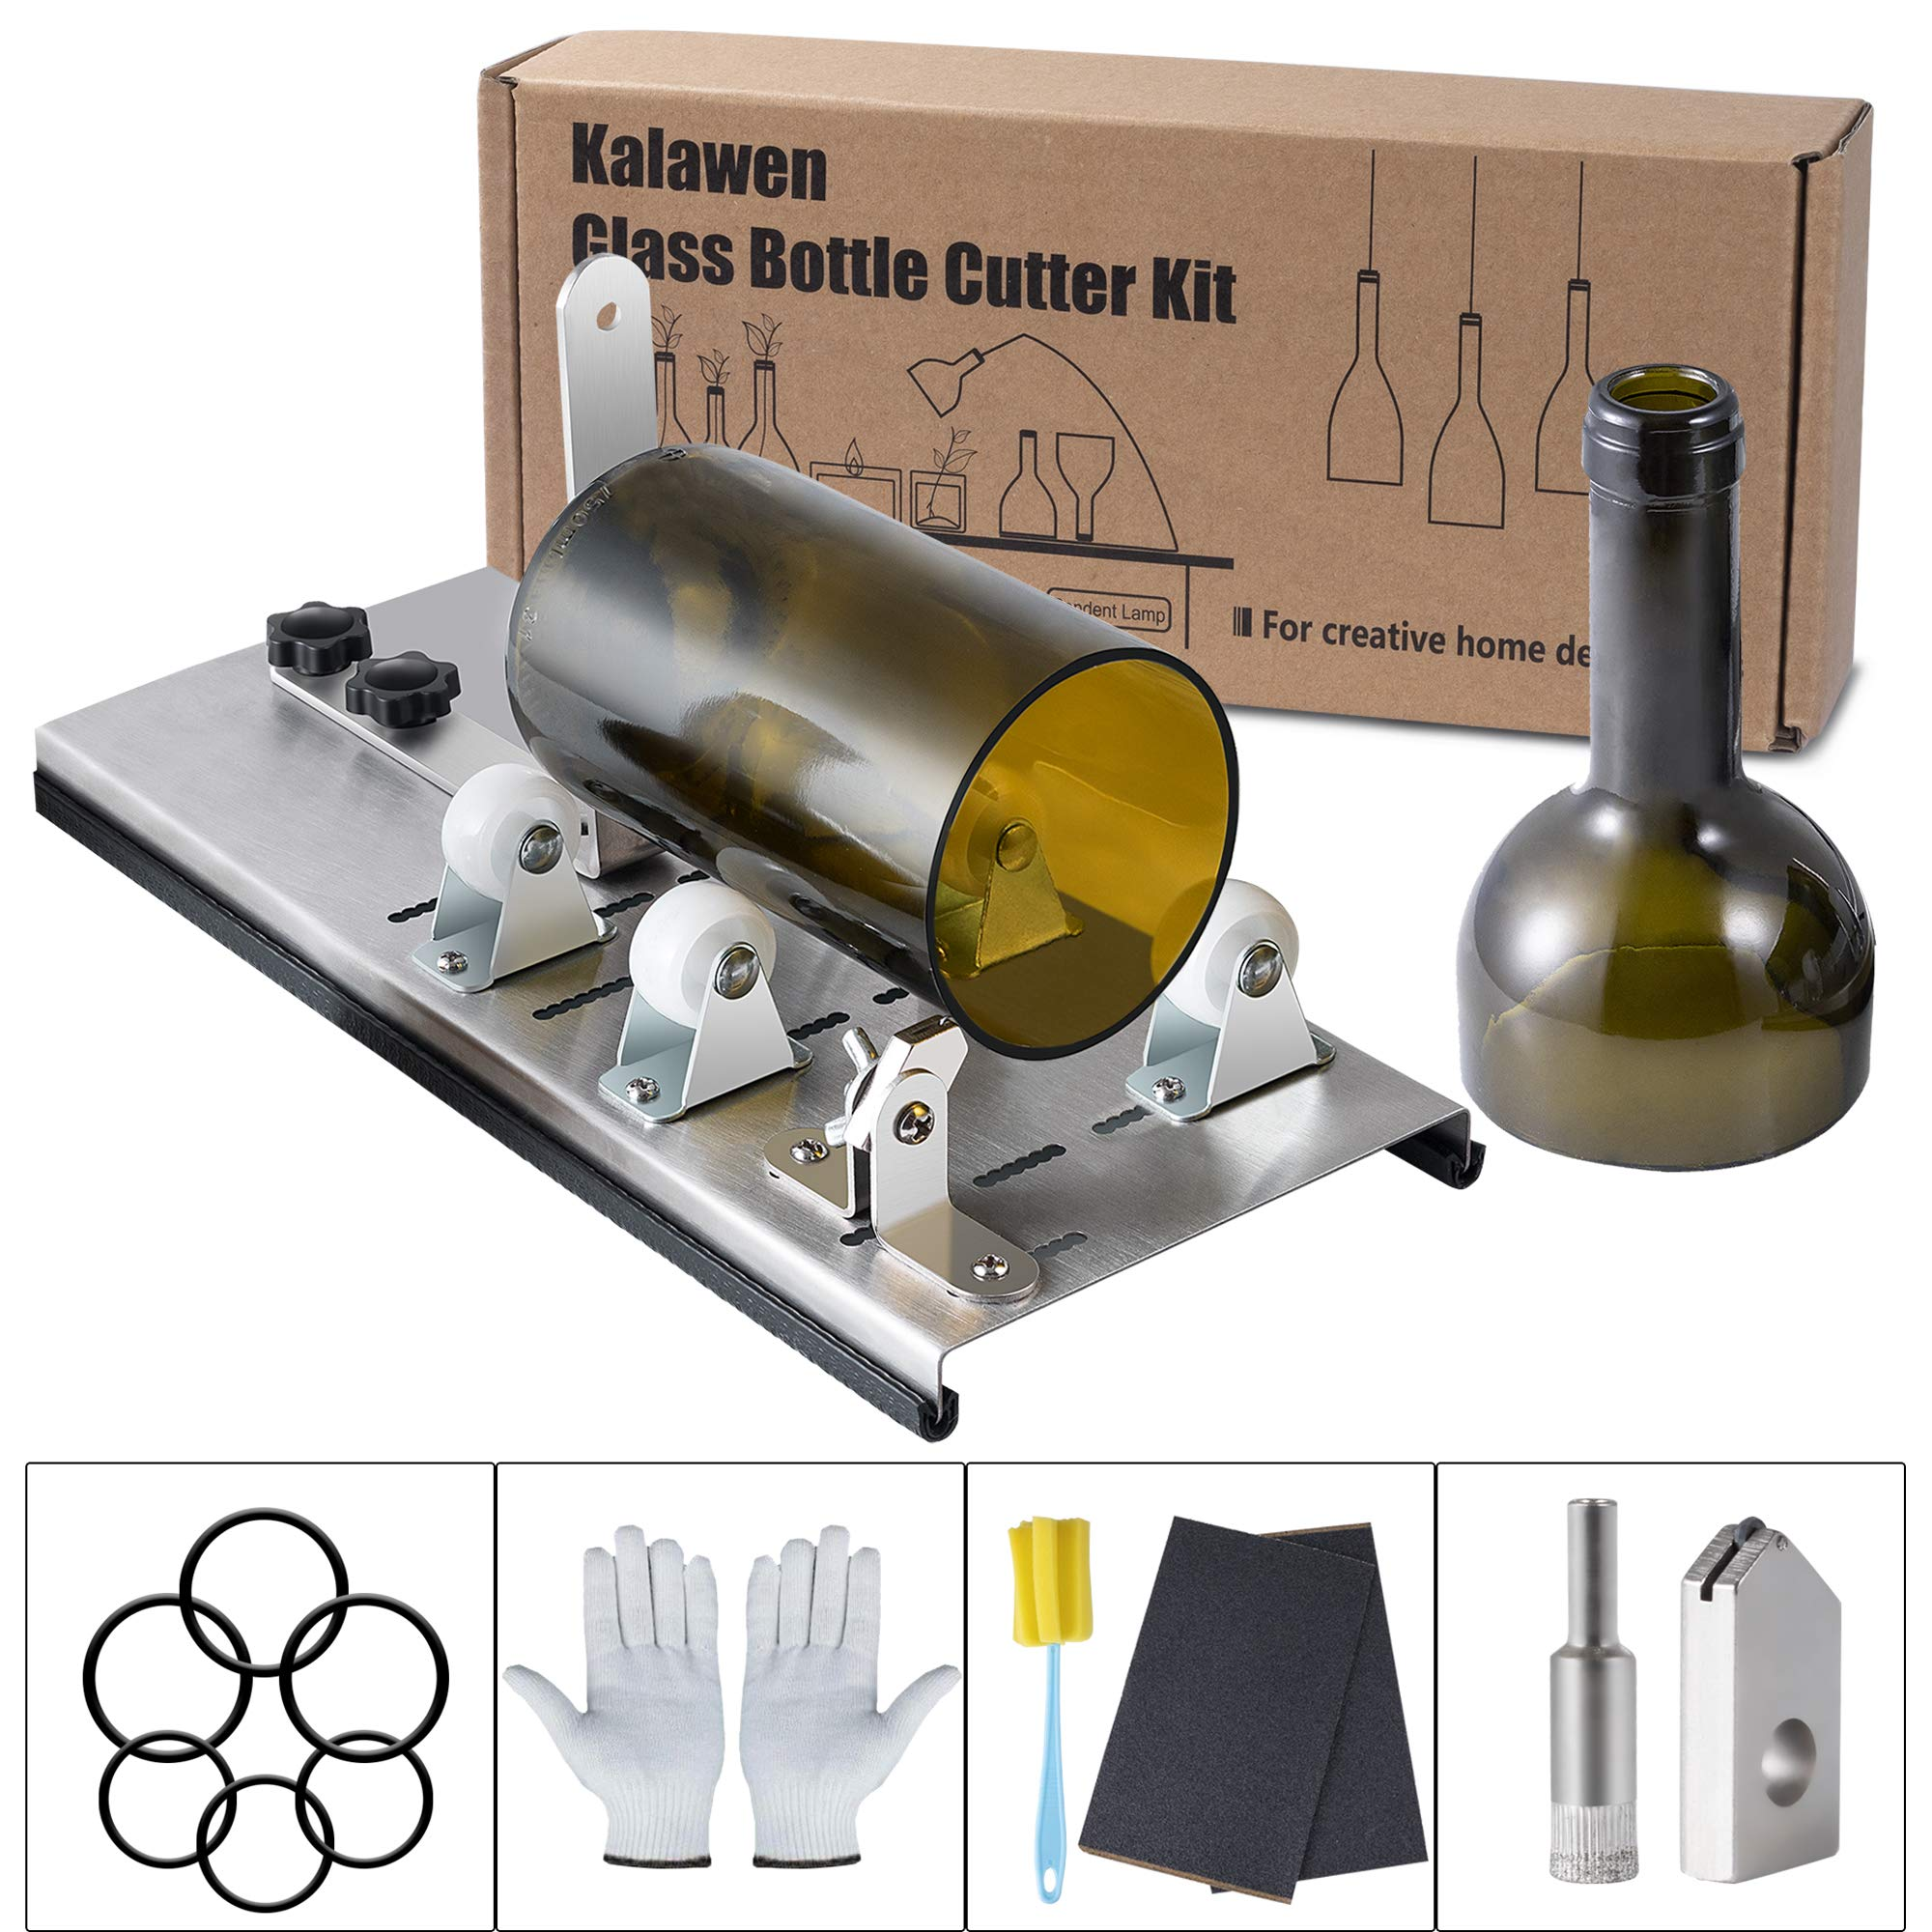 Kalawen Glass Bottle Cutter Bottle Cutter Latest Version DIY Machine for Cutting Wine Beer Whiskey Alcohol Champagne to Craft Glasses Accessories Tool Kit Gloves Fixing Rubber Ring by Kalawen (Image #1)